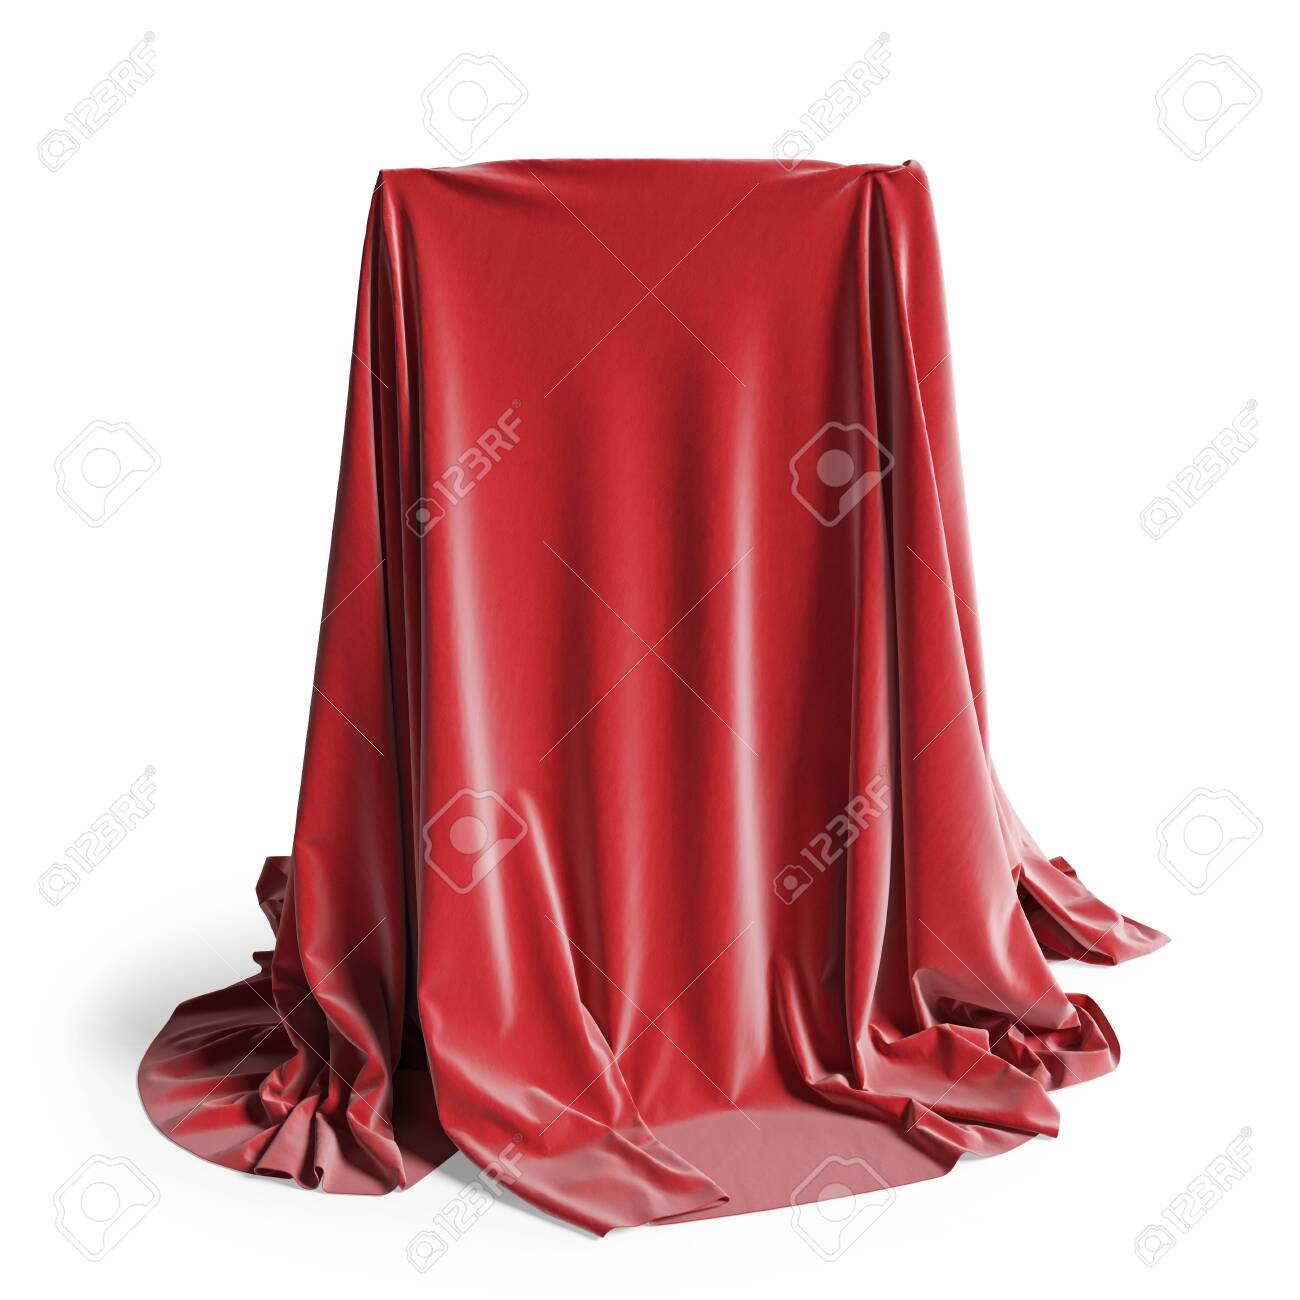 Empty podium covered with red silk cloth. Isolated on a white background with clipping path. 3d illustration - 139559890